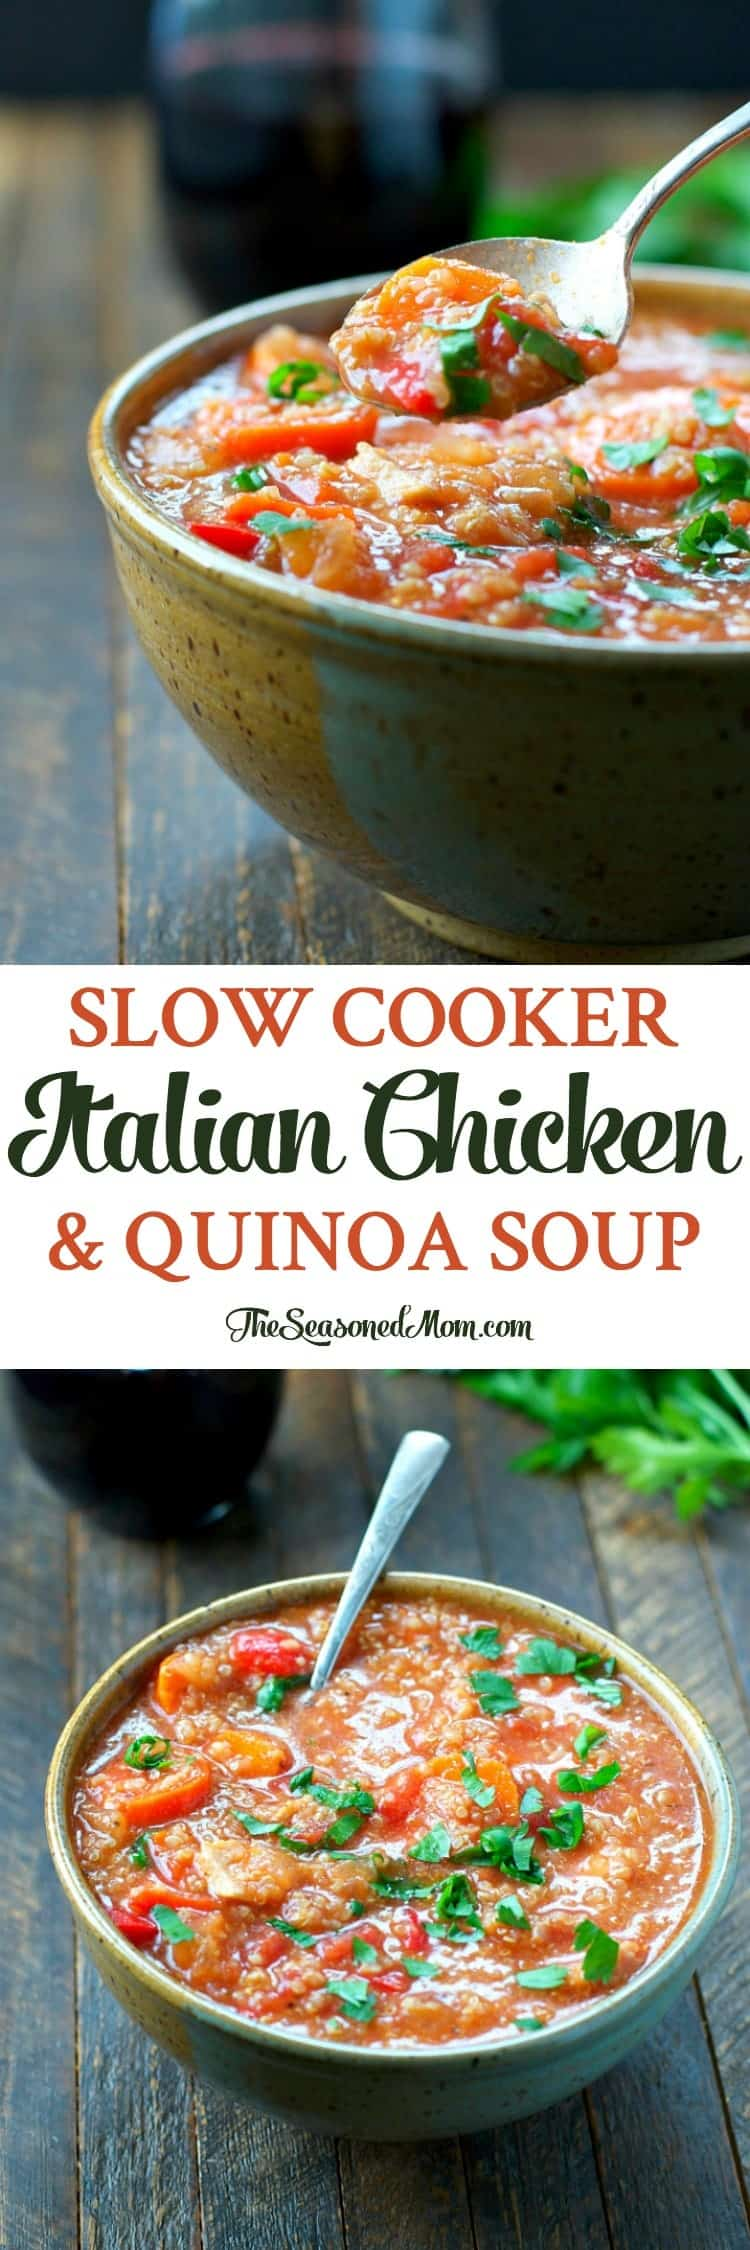 Just 5 minutes of prep for this easy Slow Cooker Italian Chicken and Quinoa Soup -- a healthy dinner that the whole family will love!